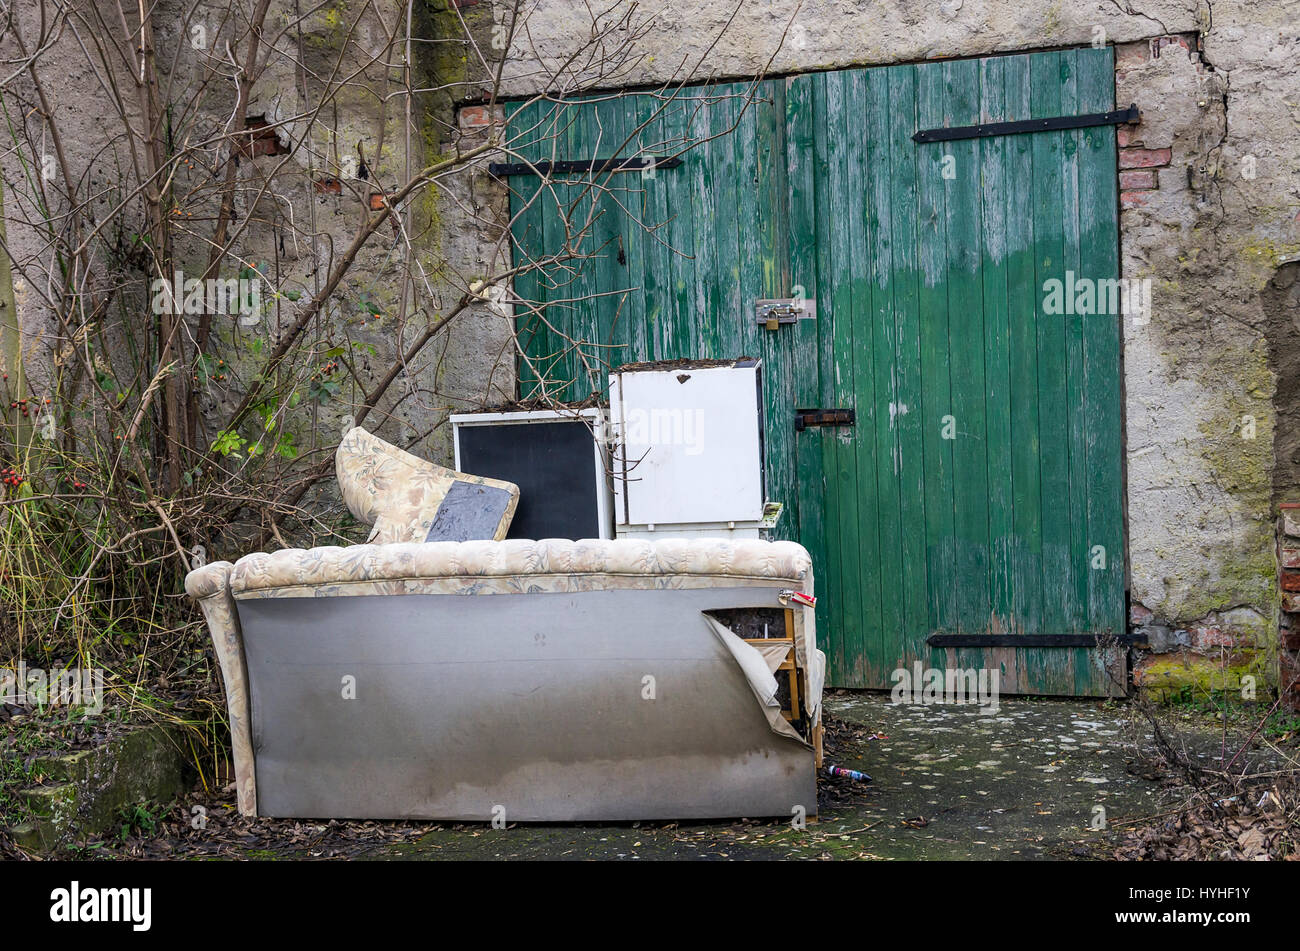 Old garage door with bulky waste idyll. - Stock Image